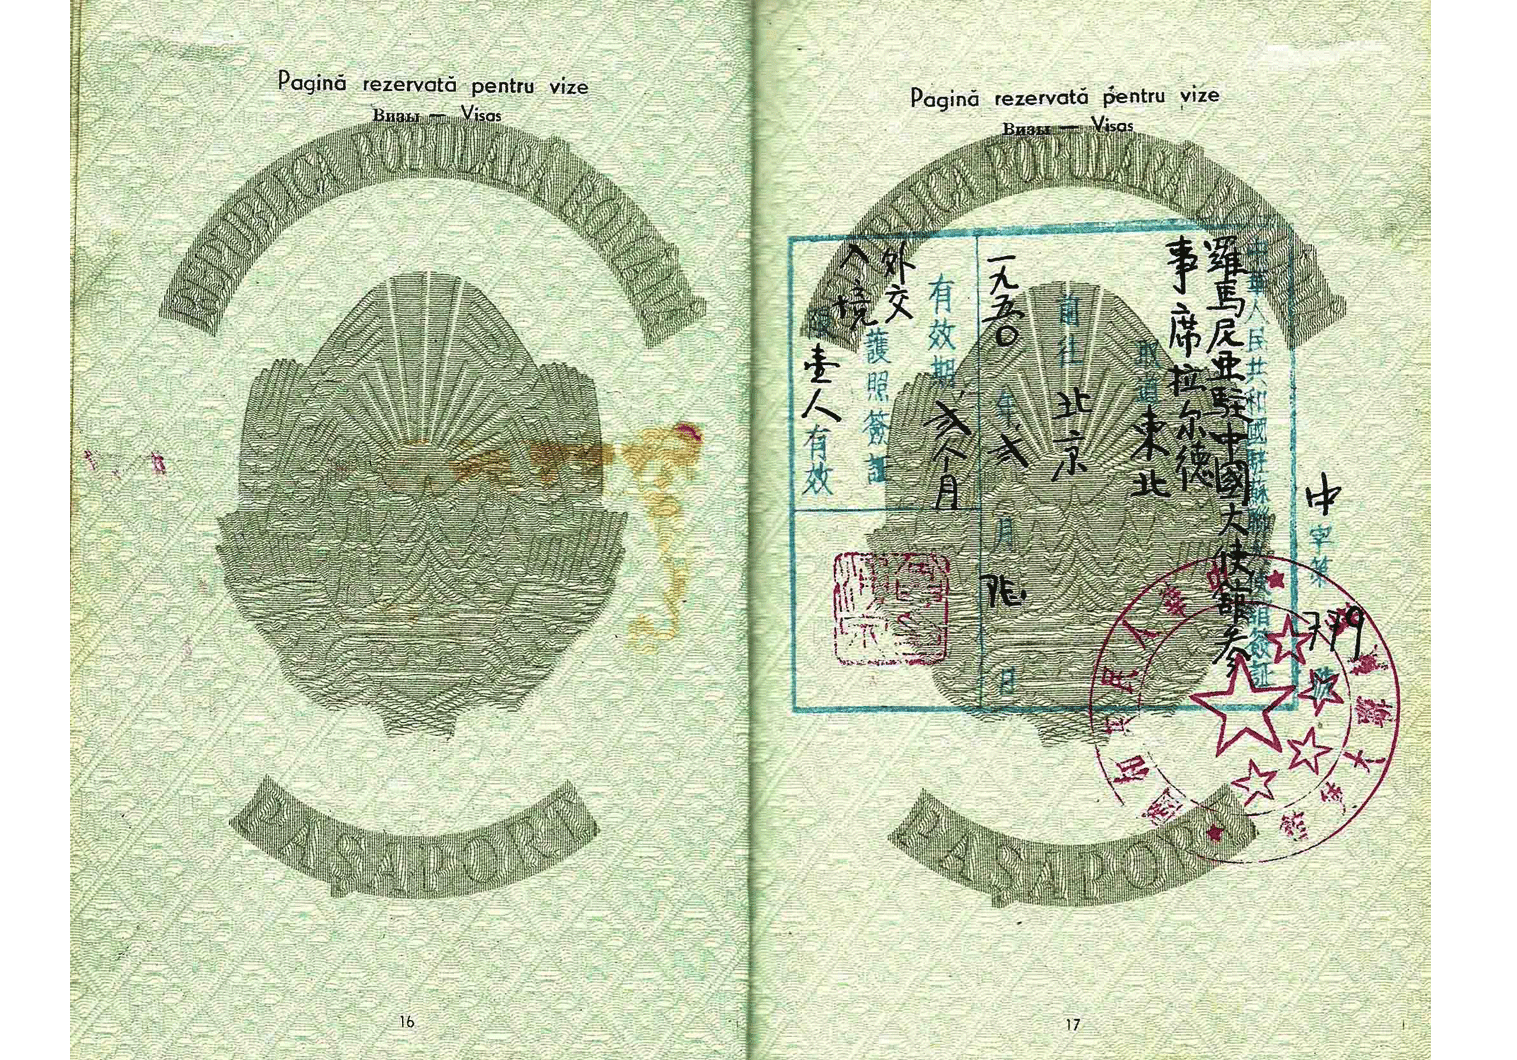 Outstanding Diplomatic passport for Beijing